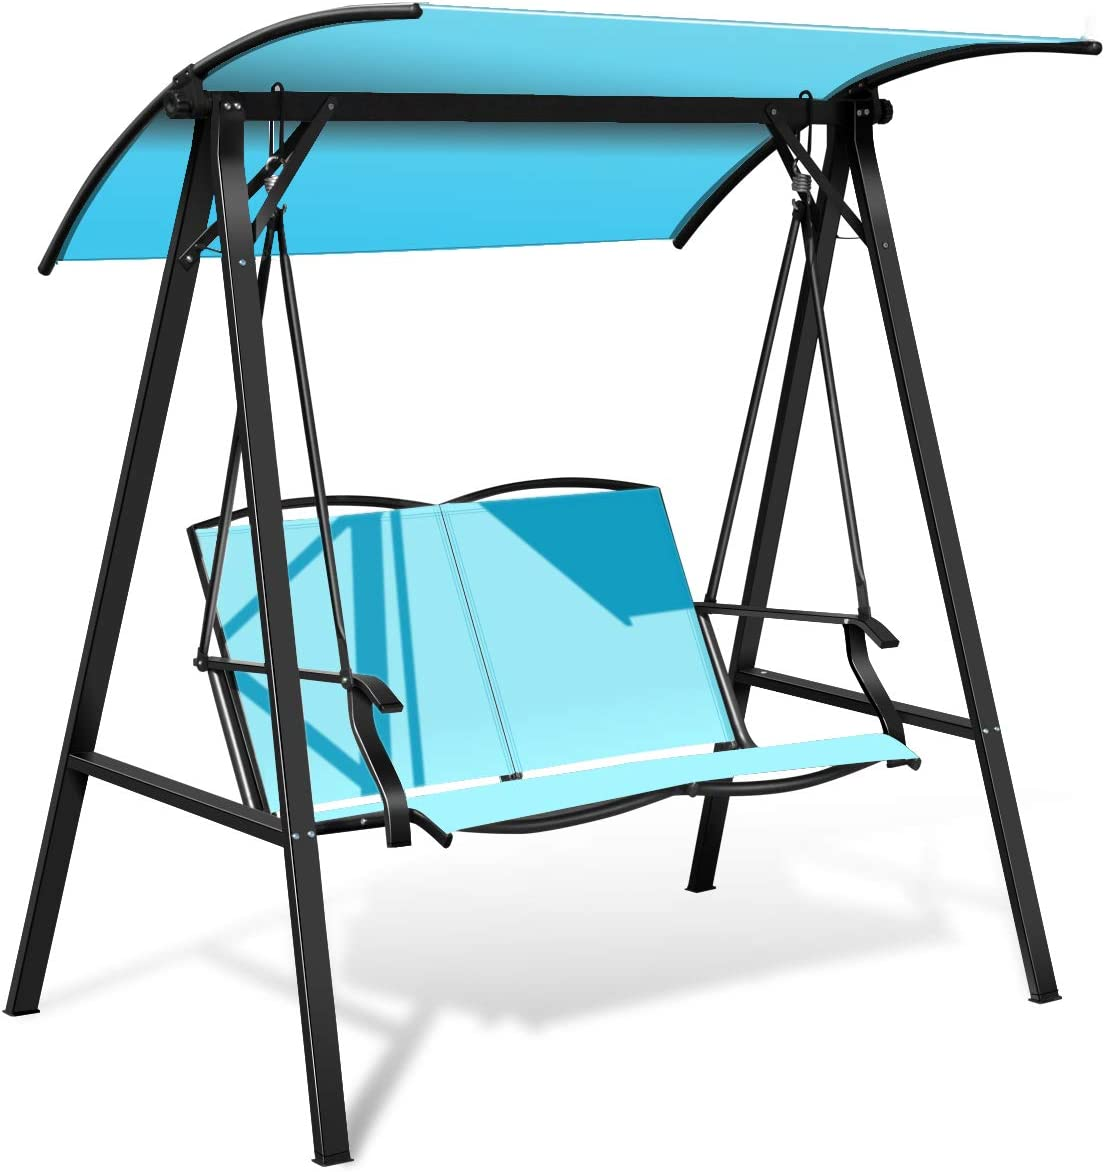 Tangkula 2-Person Patio Swing, Weather Resistant Glider with Adjustable Canopy, Outdoor Modern Canopy Swing Hammock Seats with Handrails Suitable for Porch Garden Poolside Turquoise